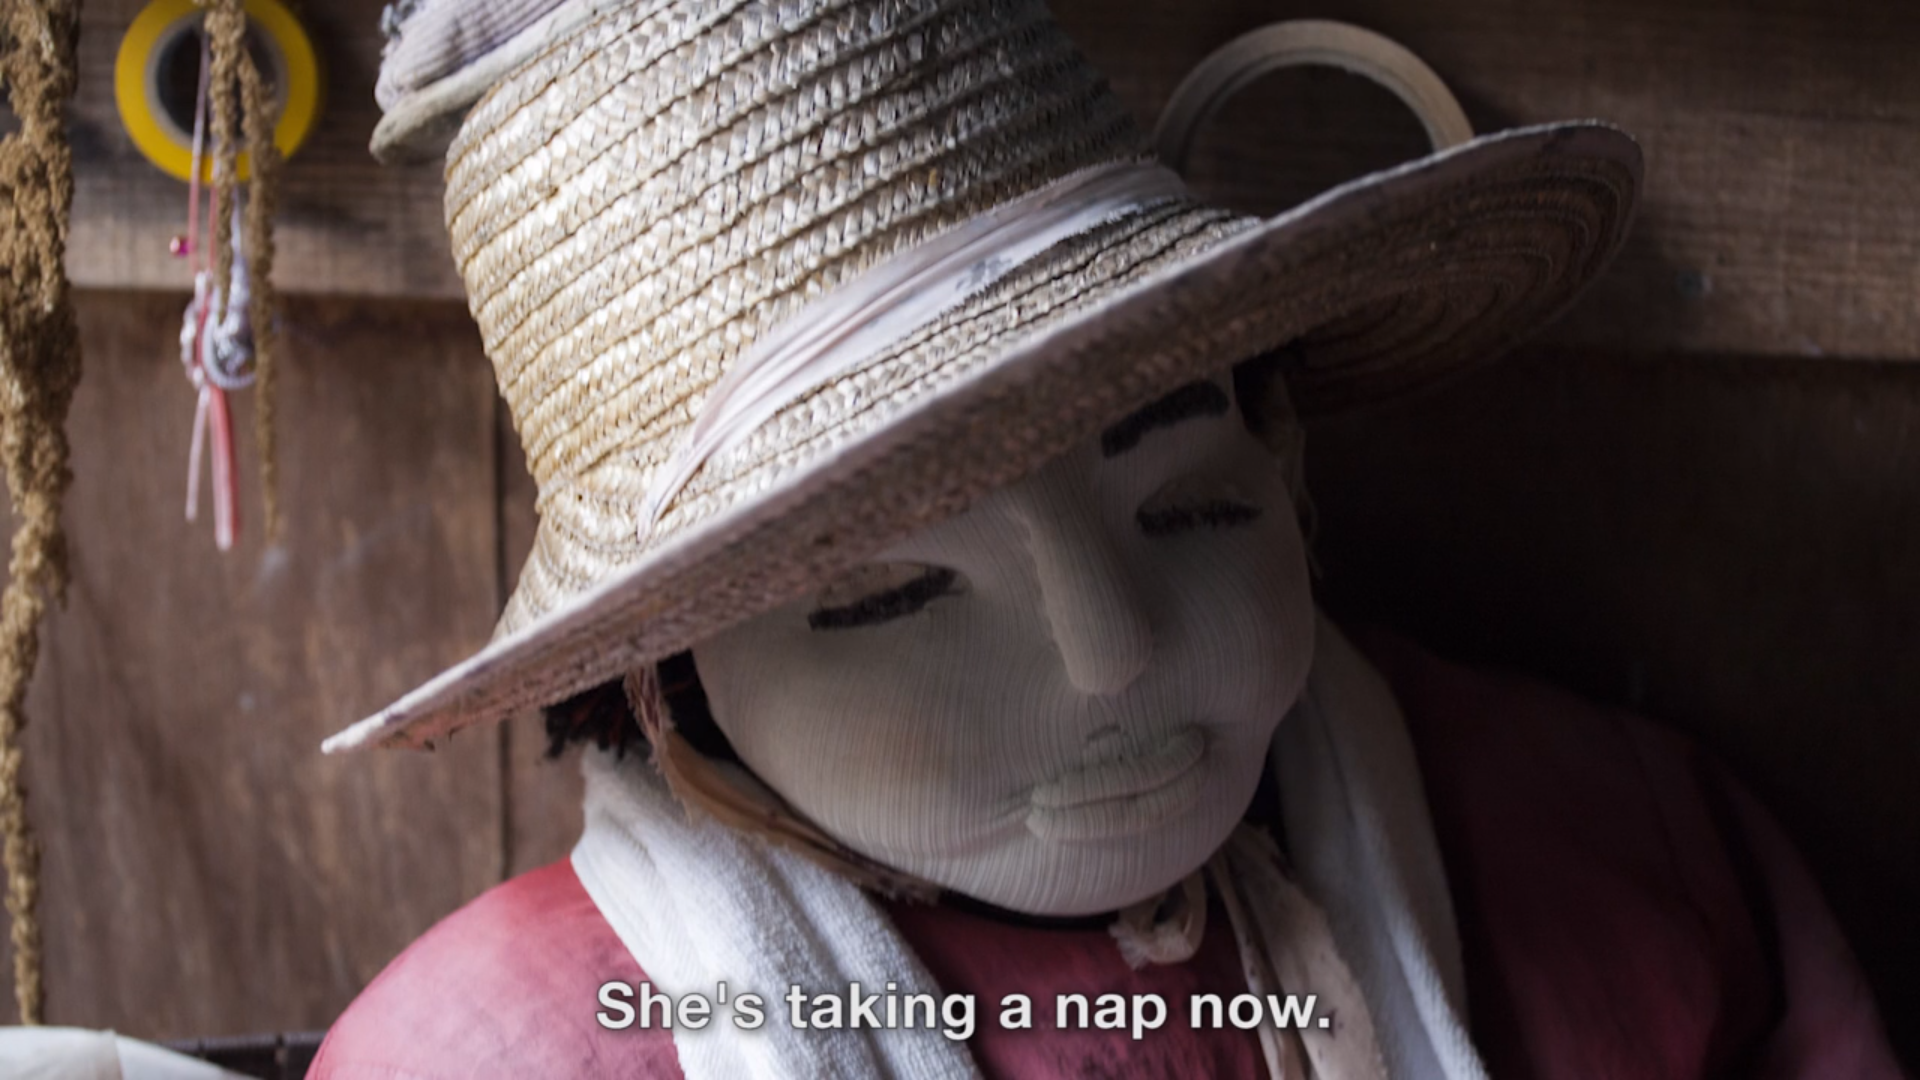 Tsukimi's doll isn't ready to wake up, yet. Credit: Fritz Schumann/The Verge